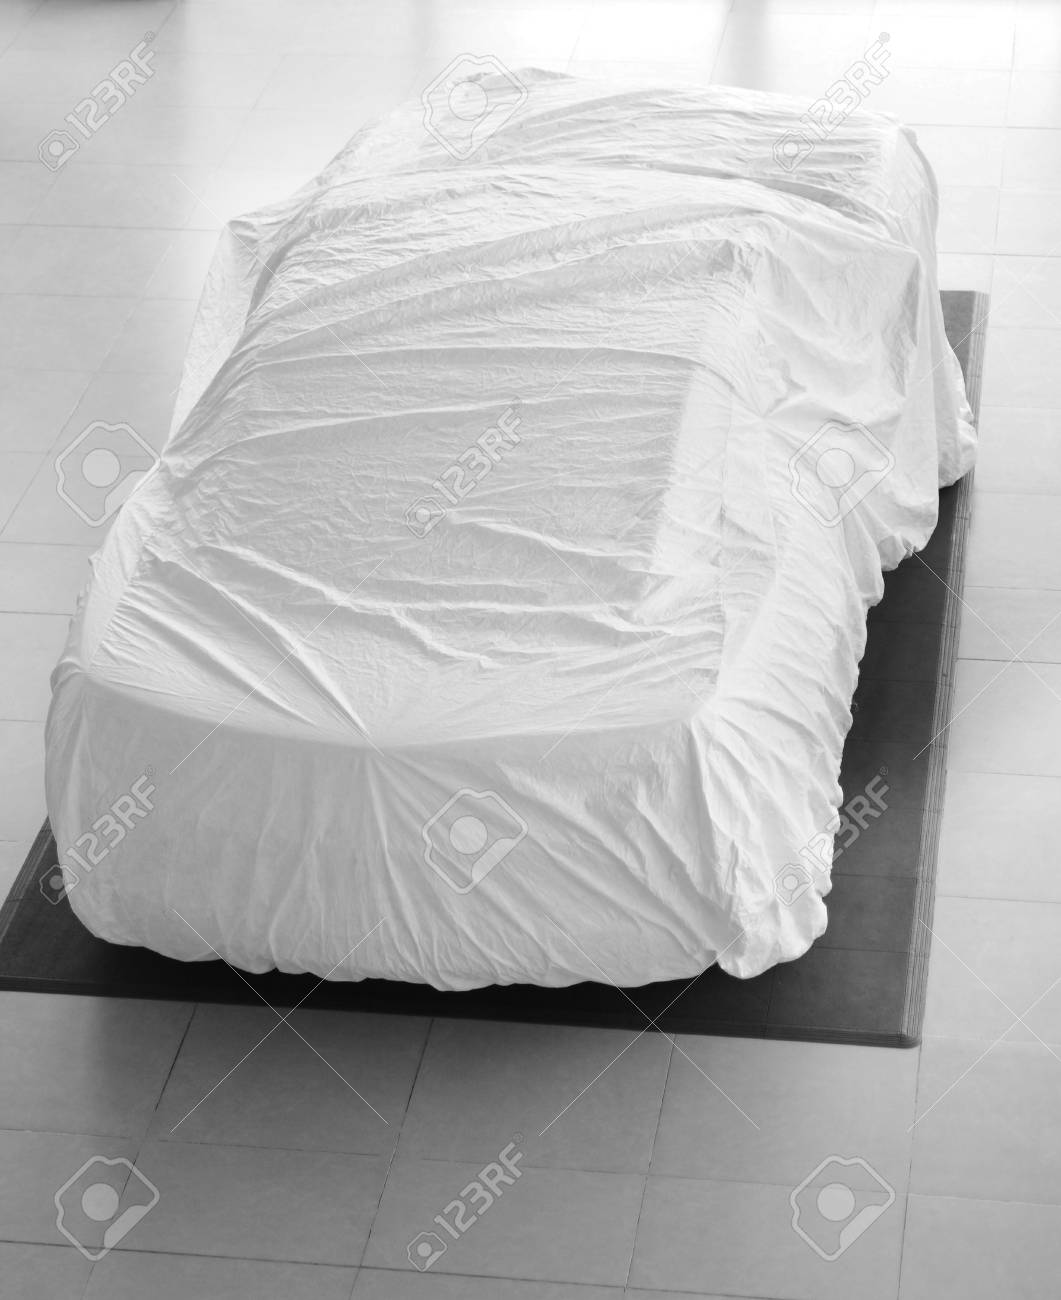 Car cover. Stock Photo - 8572511